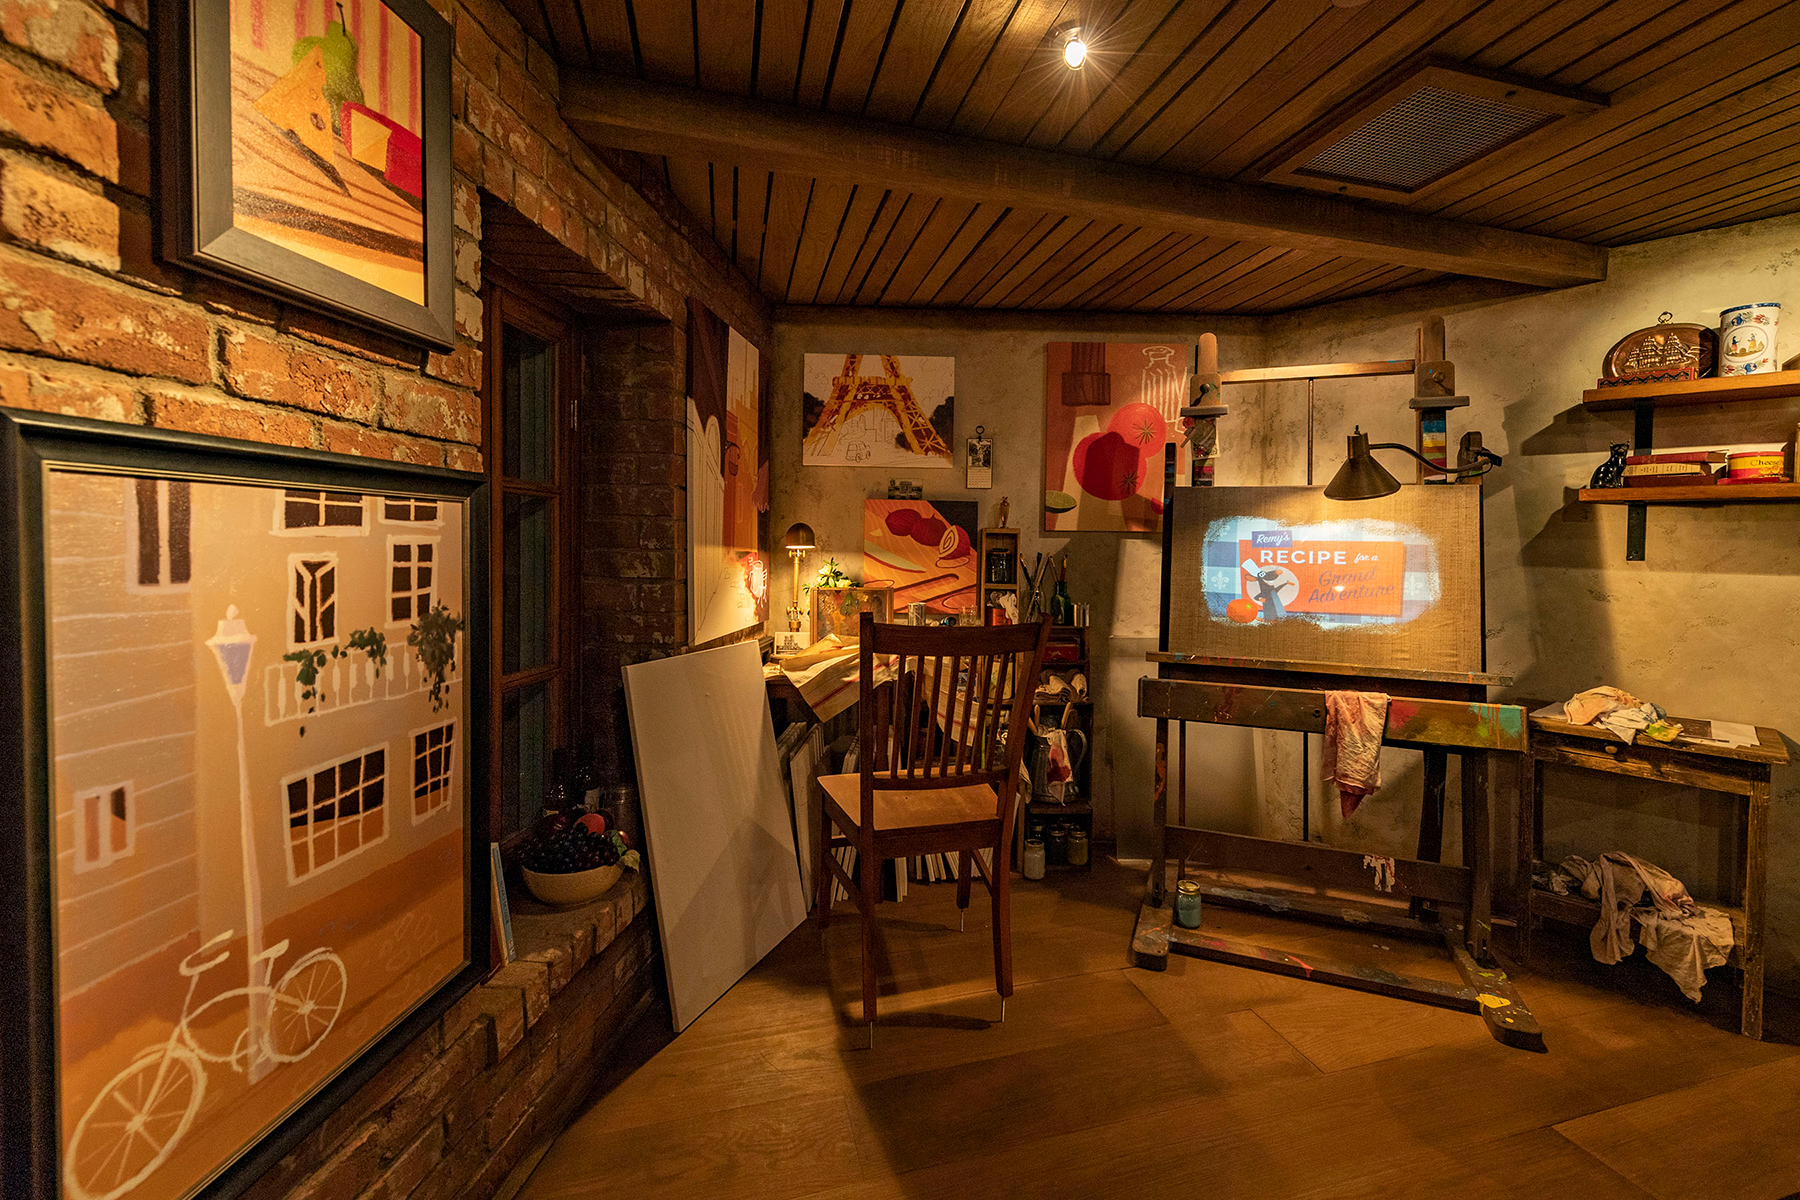 Guests enter a French artist's loft featuring French-inspired paintings, cupboards filled with art supplies and two magical canvases that come to life in the queue for Remy's Ratatouille Adventure in EPCOT at Walt Disney World Resort in Lake Buena Vista, Fla.